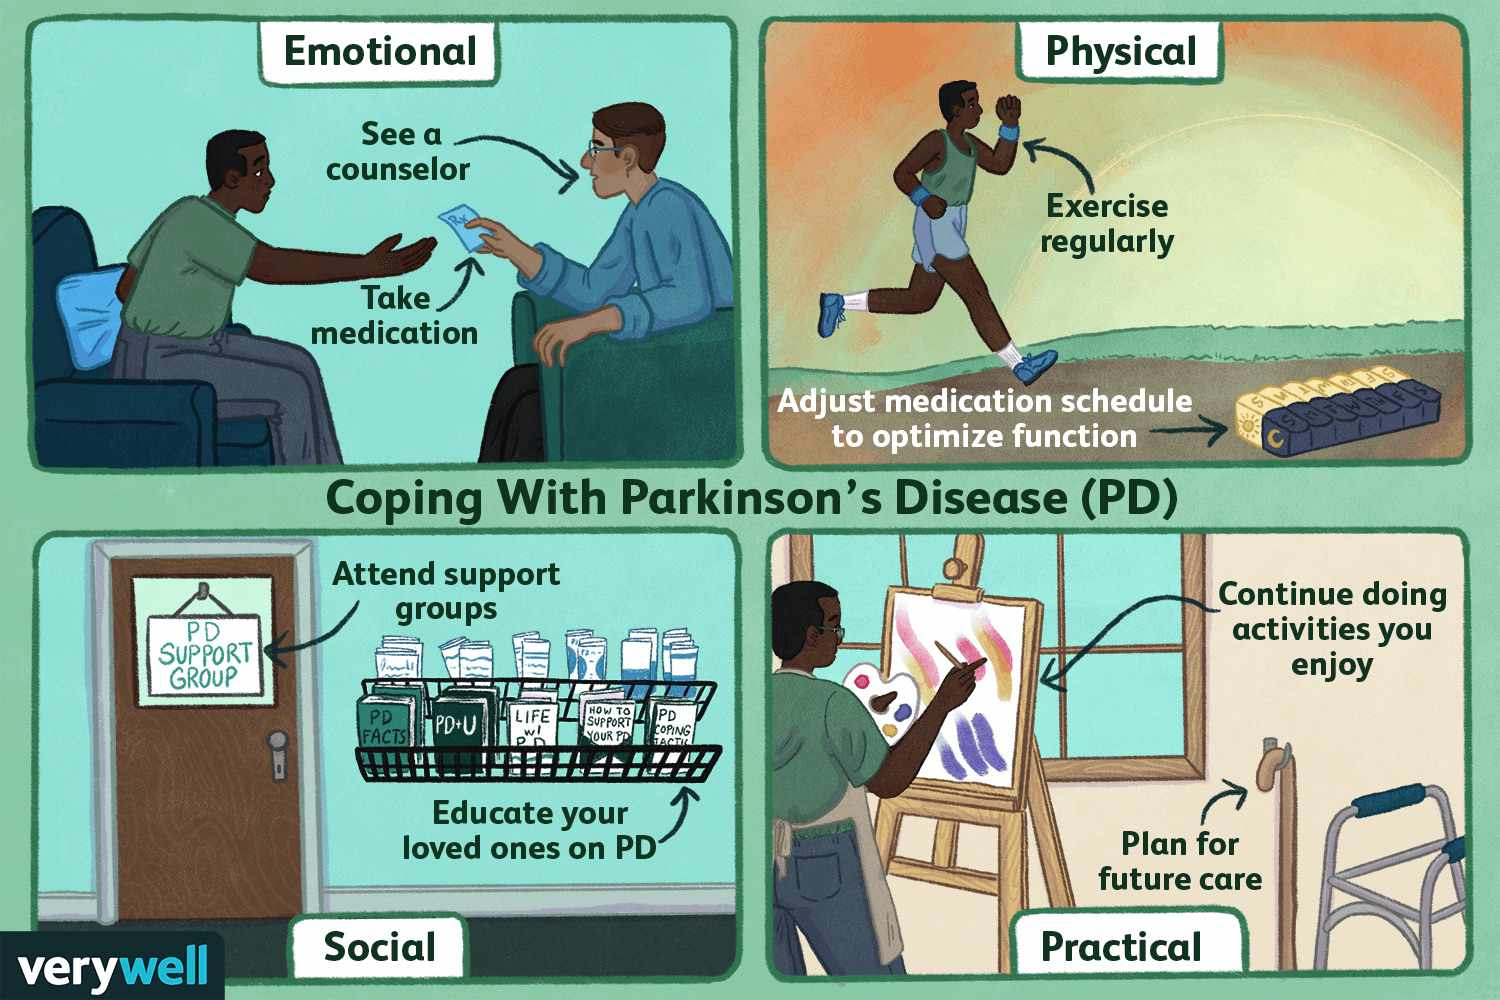 Coping with Parkinson's Disease